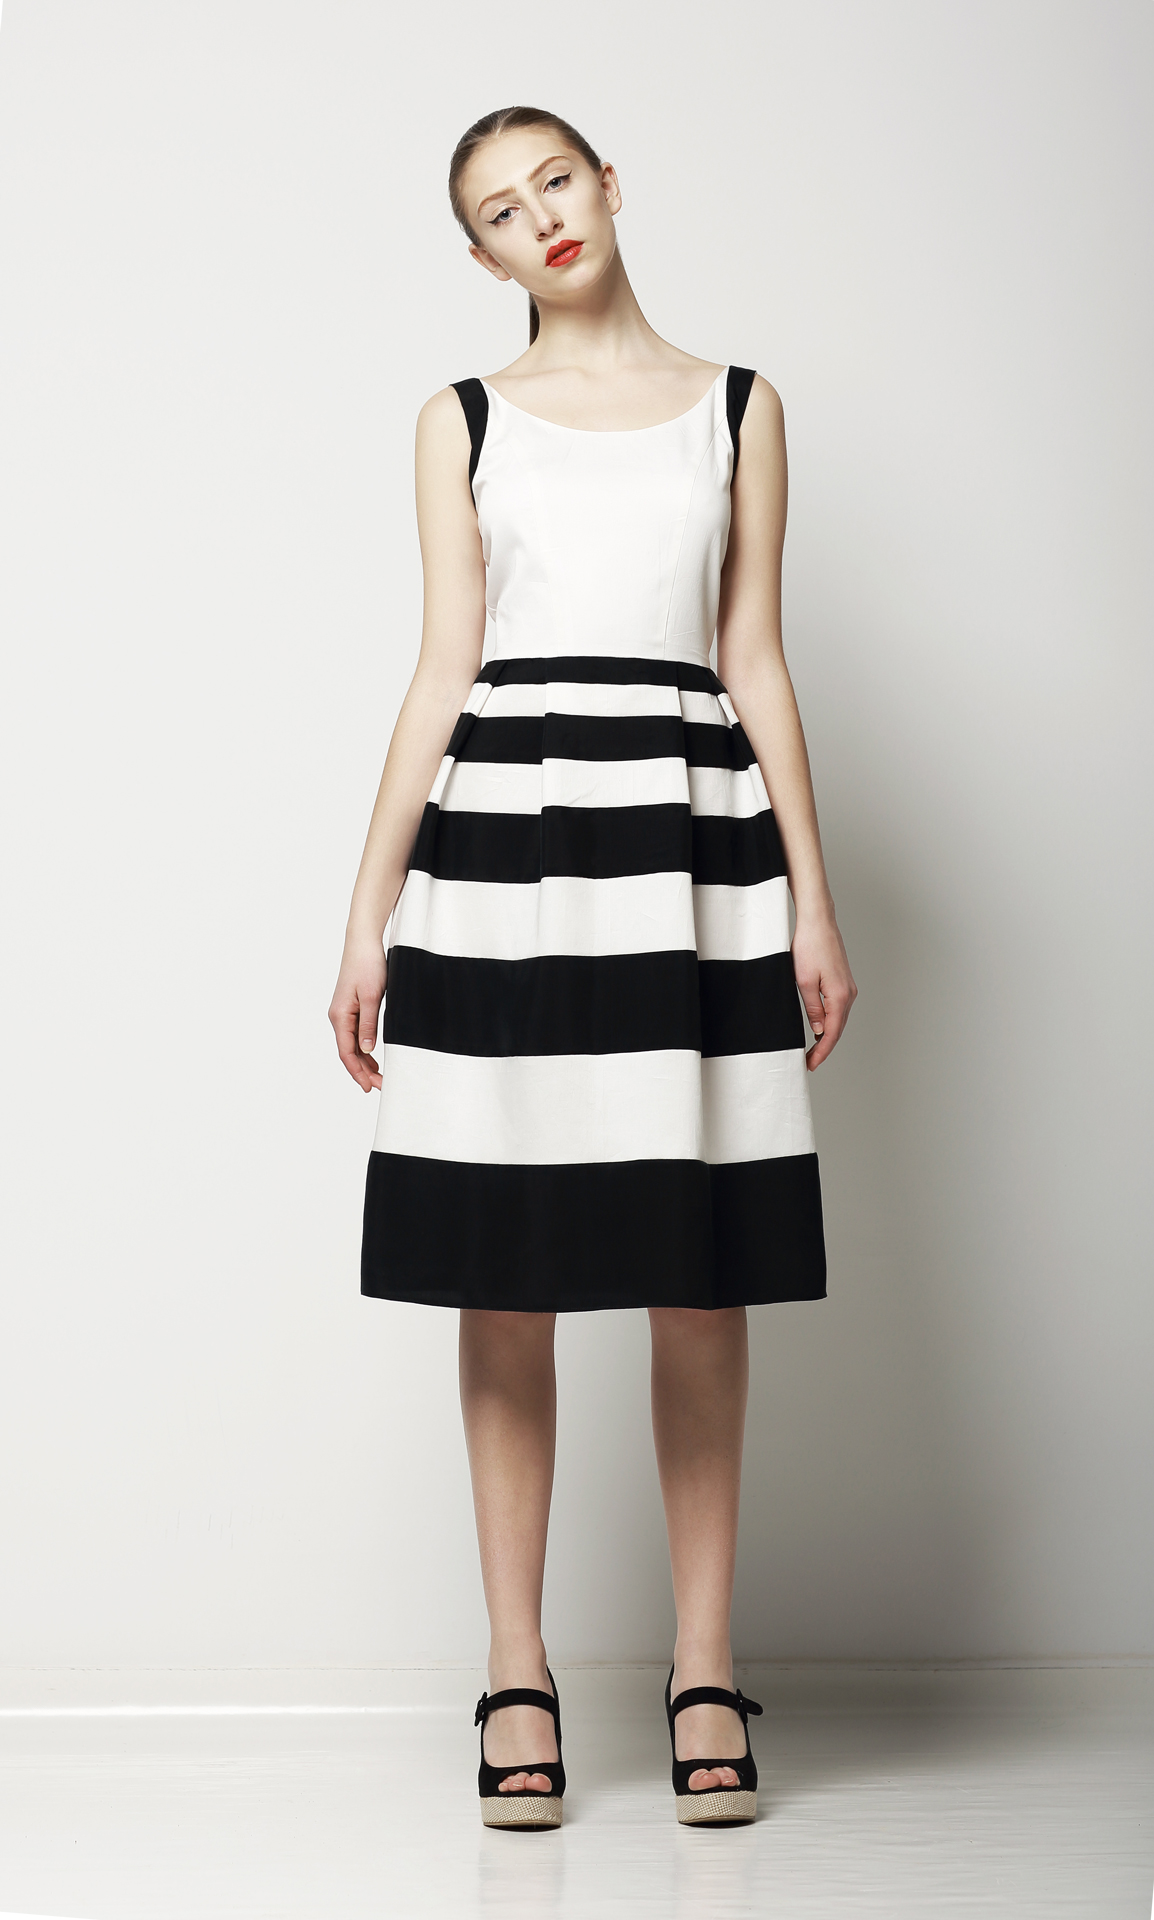 Fashion Model in Monochrome Dress